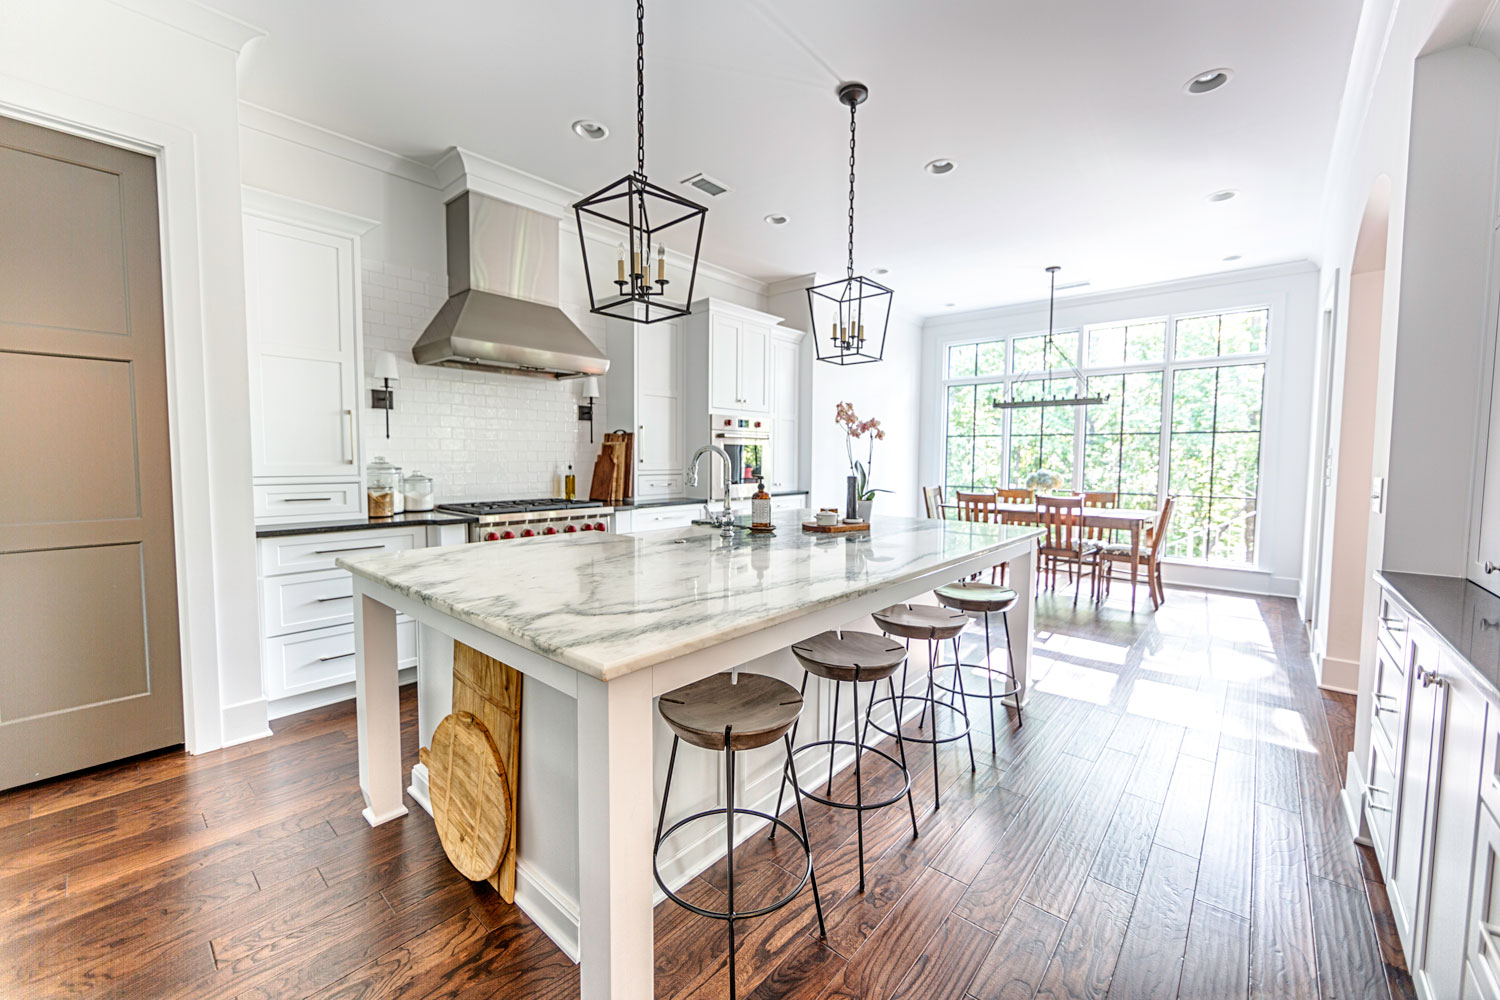 Kitchen Expansion Ideas When Remodeling a Home